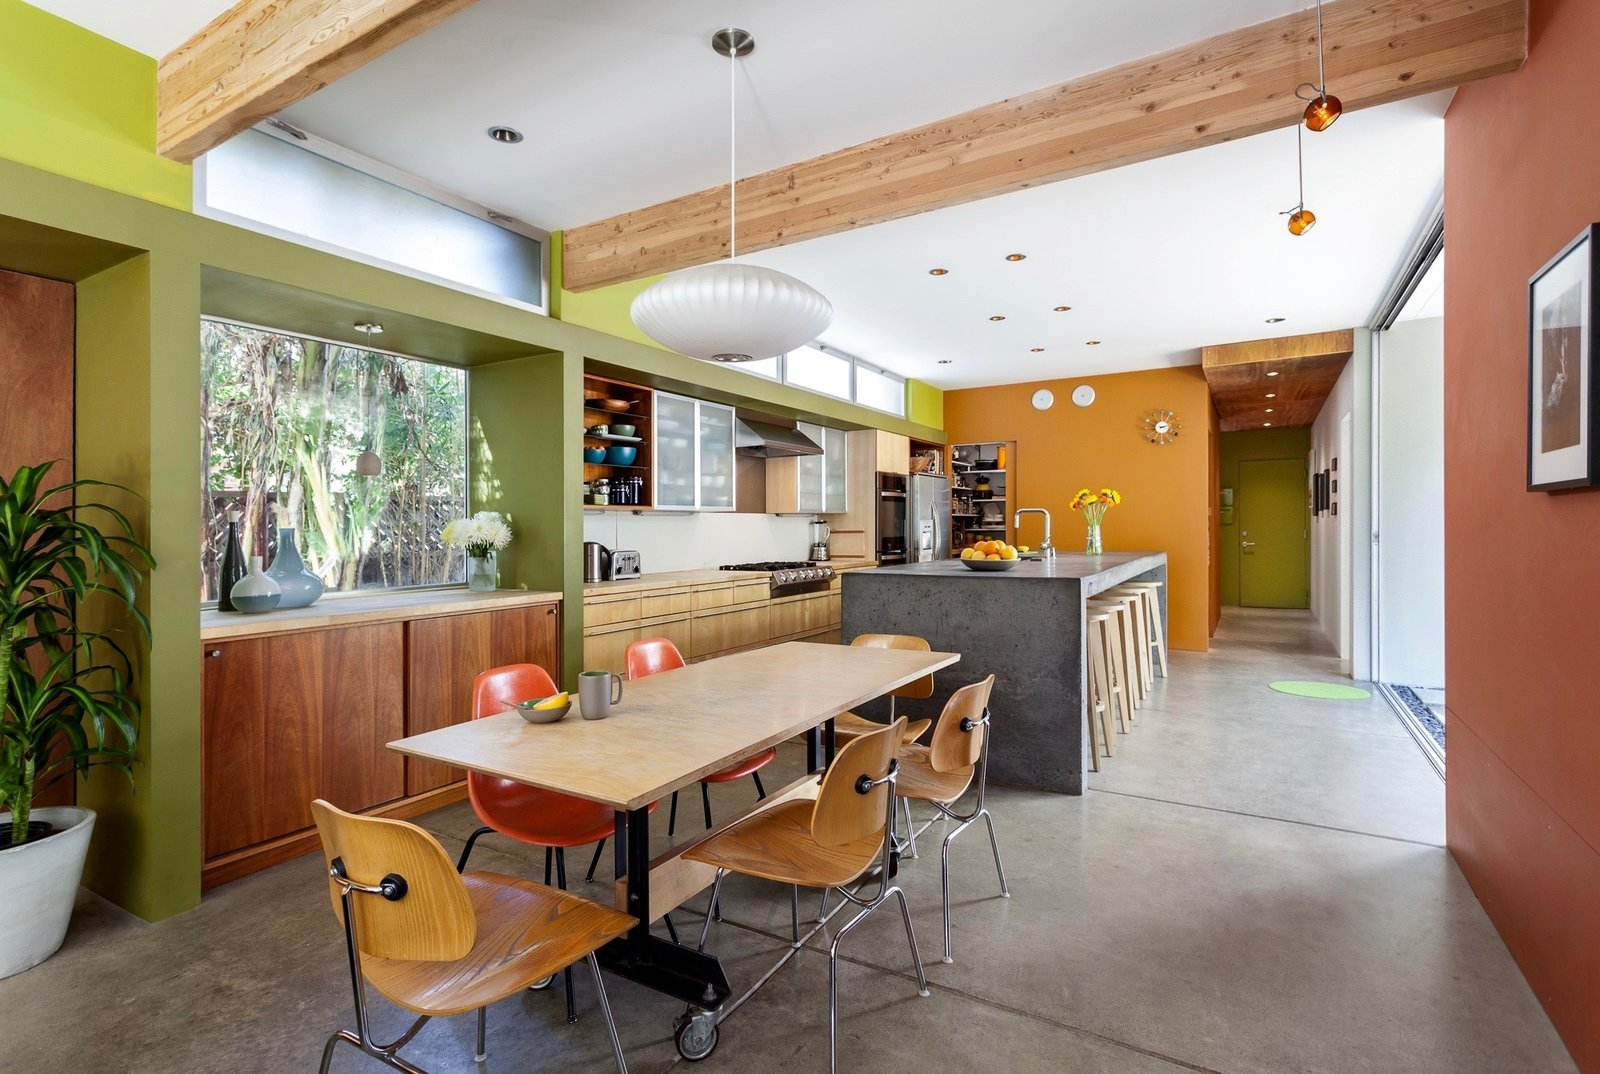 Dining Room to Kitchen Tagged: Concrete Counter, Dining Room, Table, Bar, Stools, Accent Lighting, Chair, Storage, Pendant Lighting, Recessed Lighting, and Concrete Floor.  Land Park Residence by serrao design | Architecture